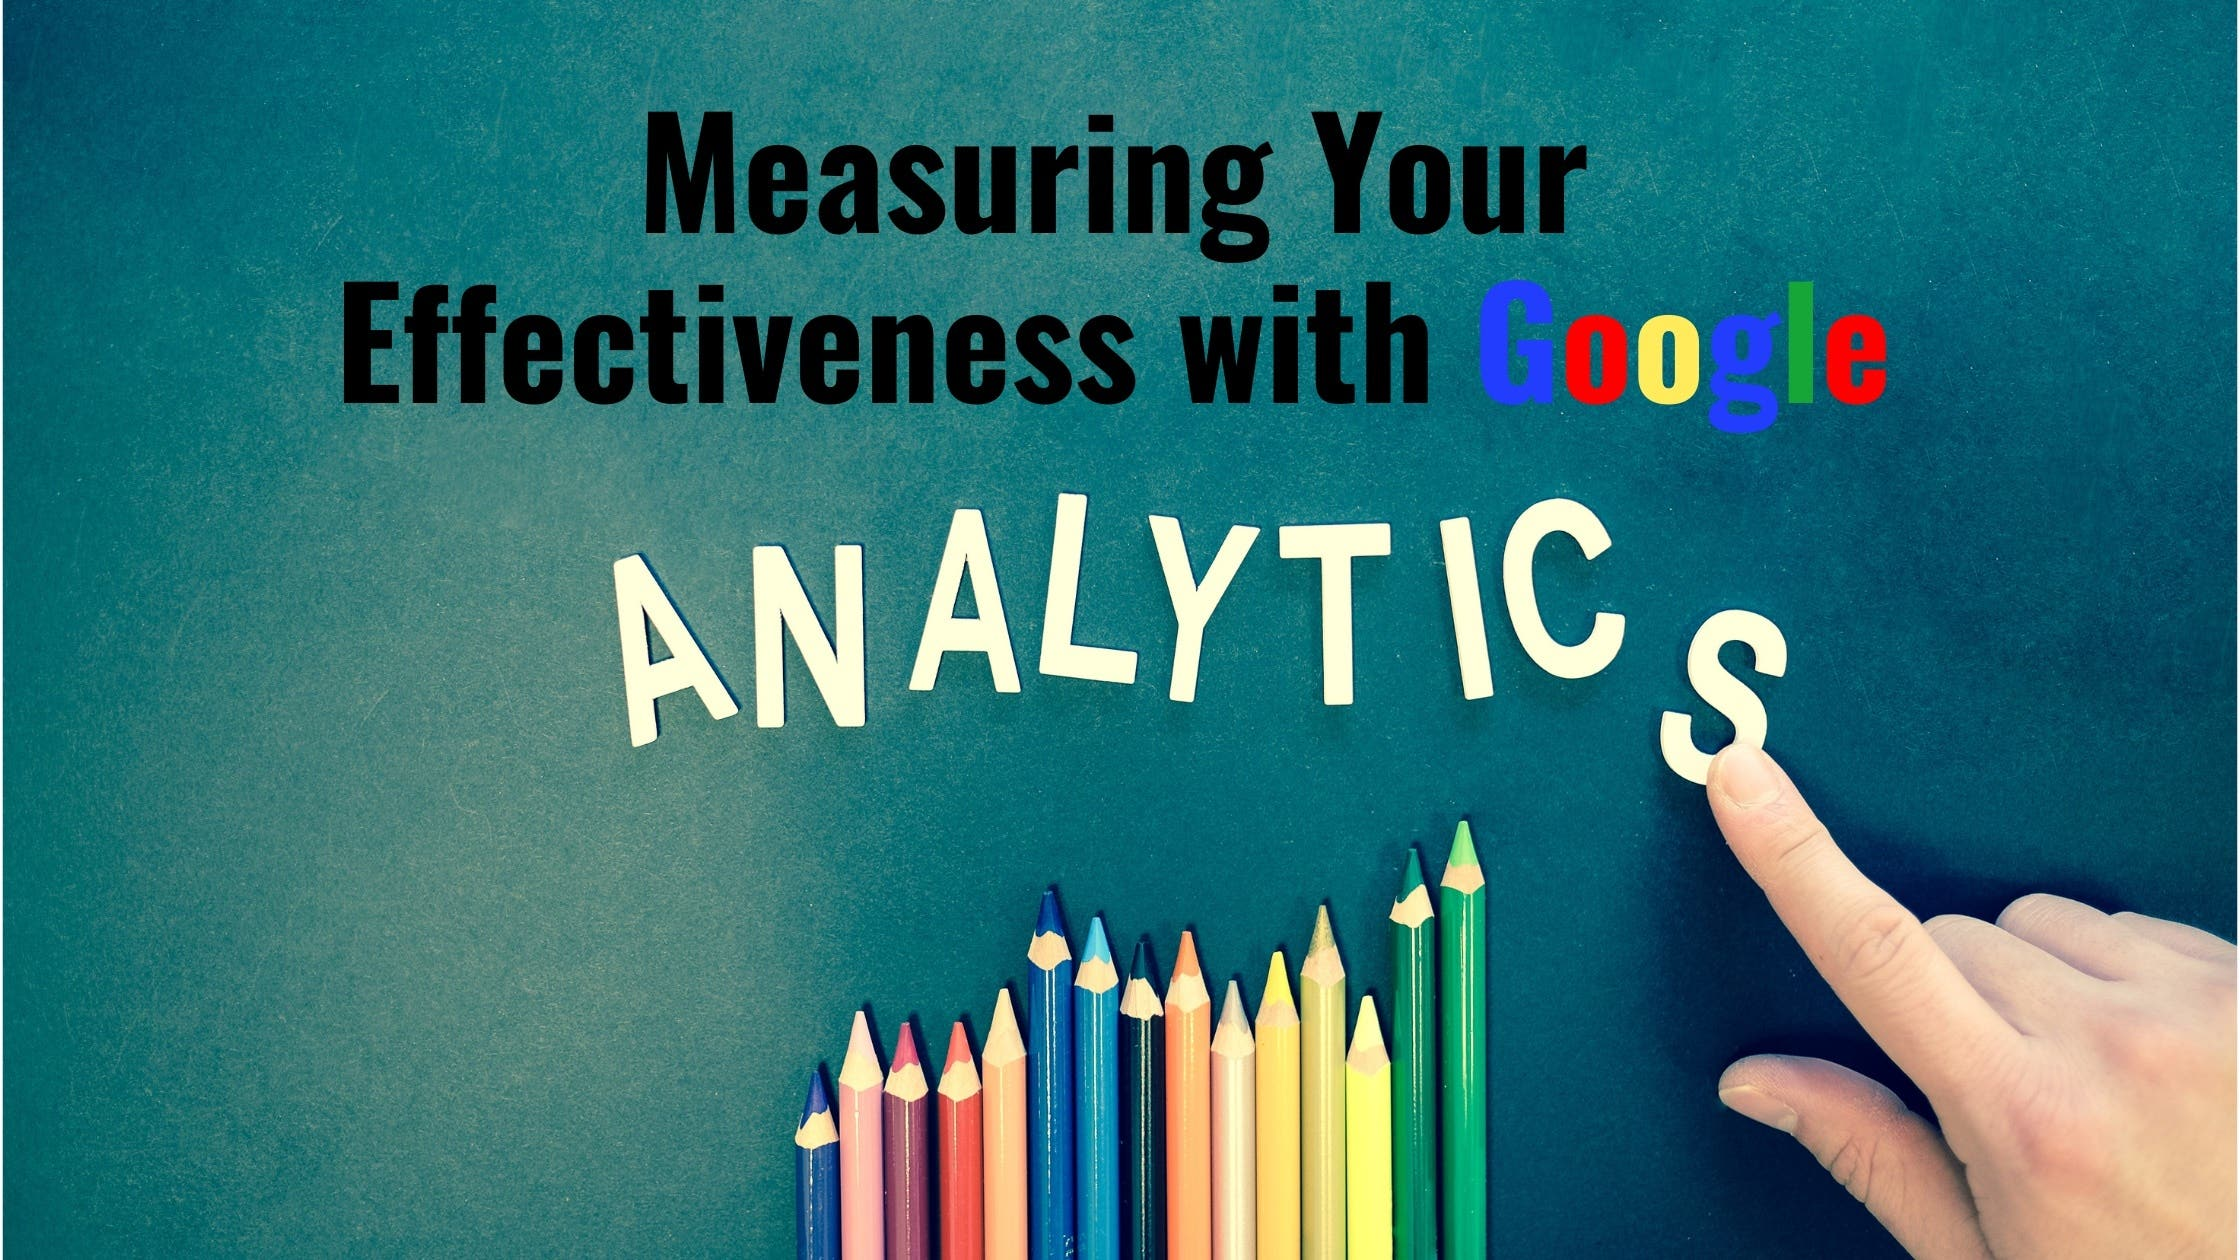 Measuring Your Effectiveness with Google Analytics